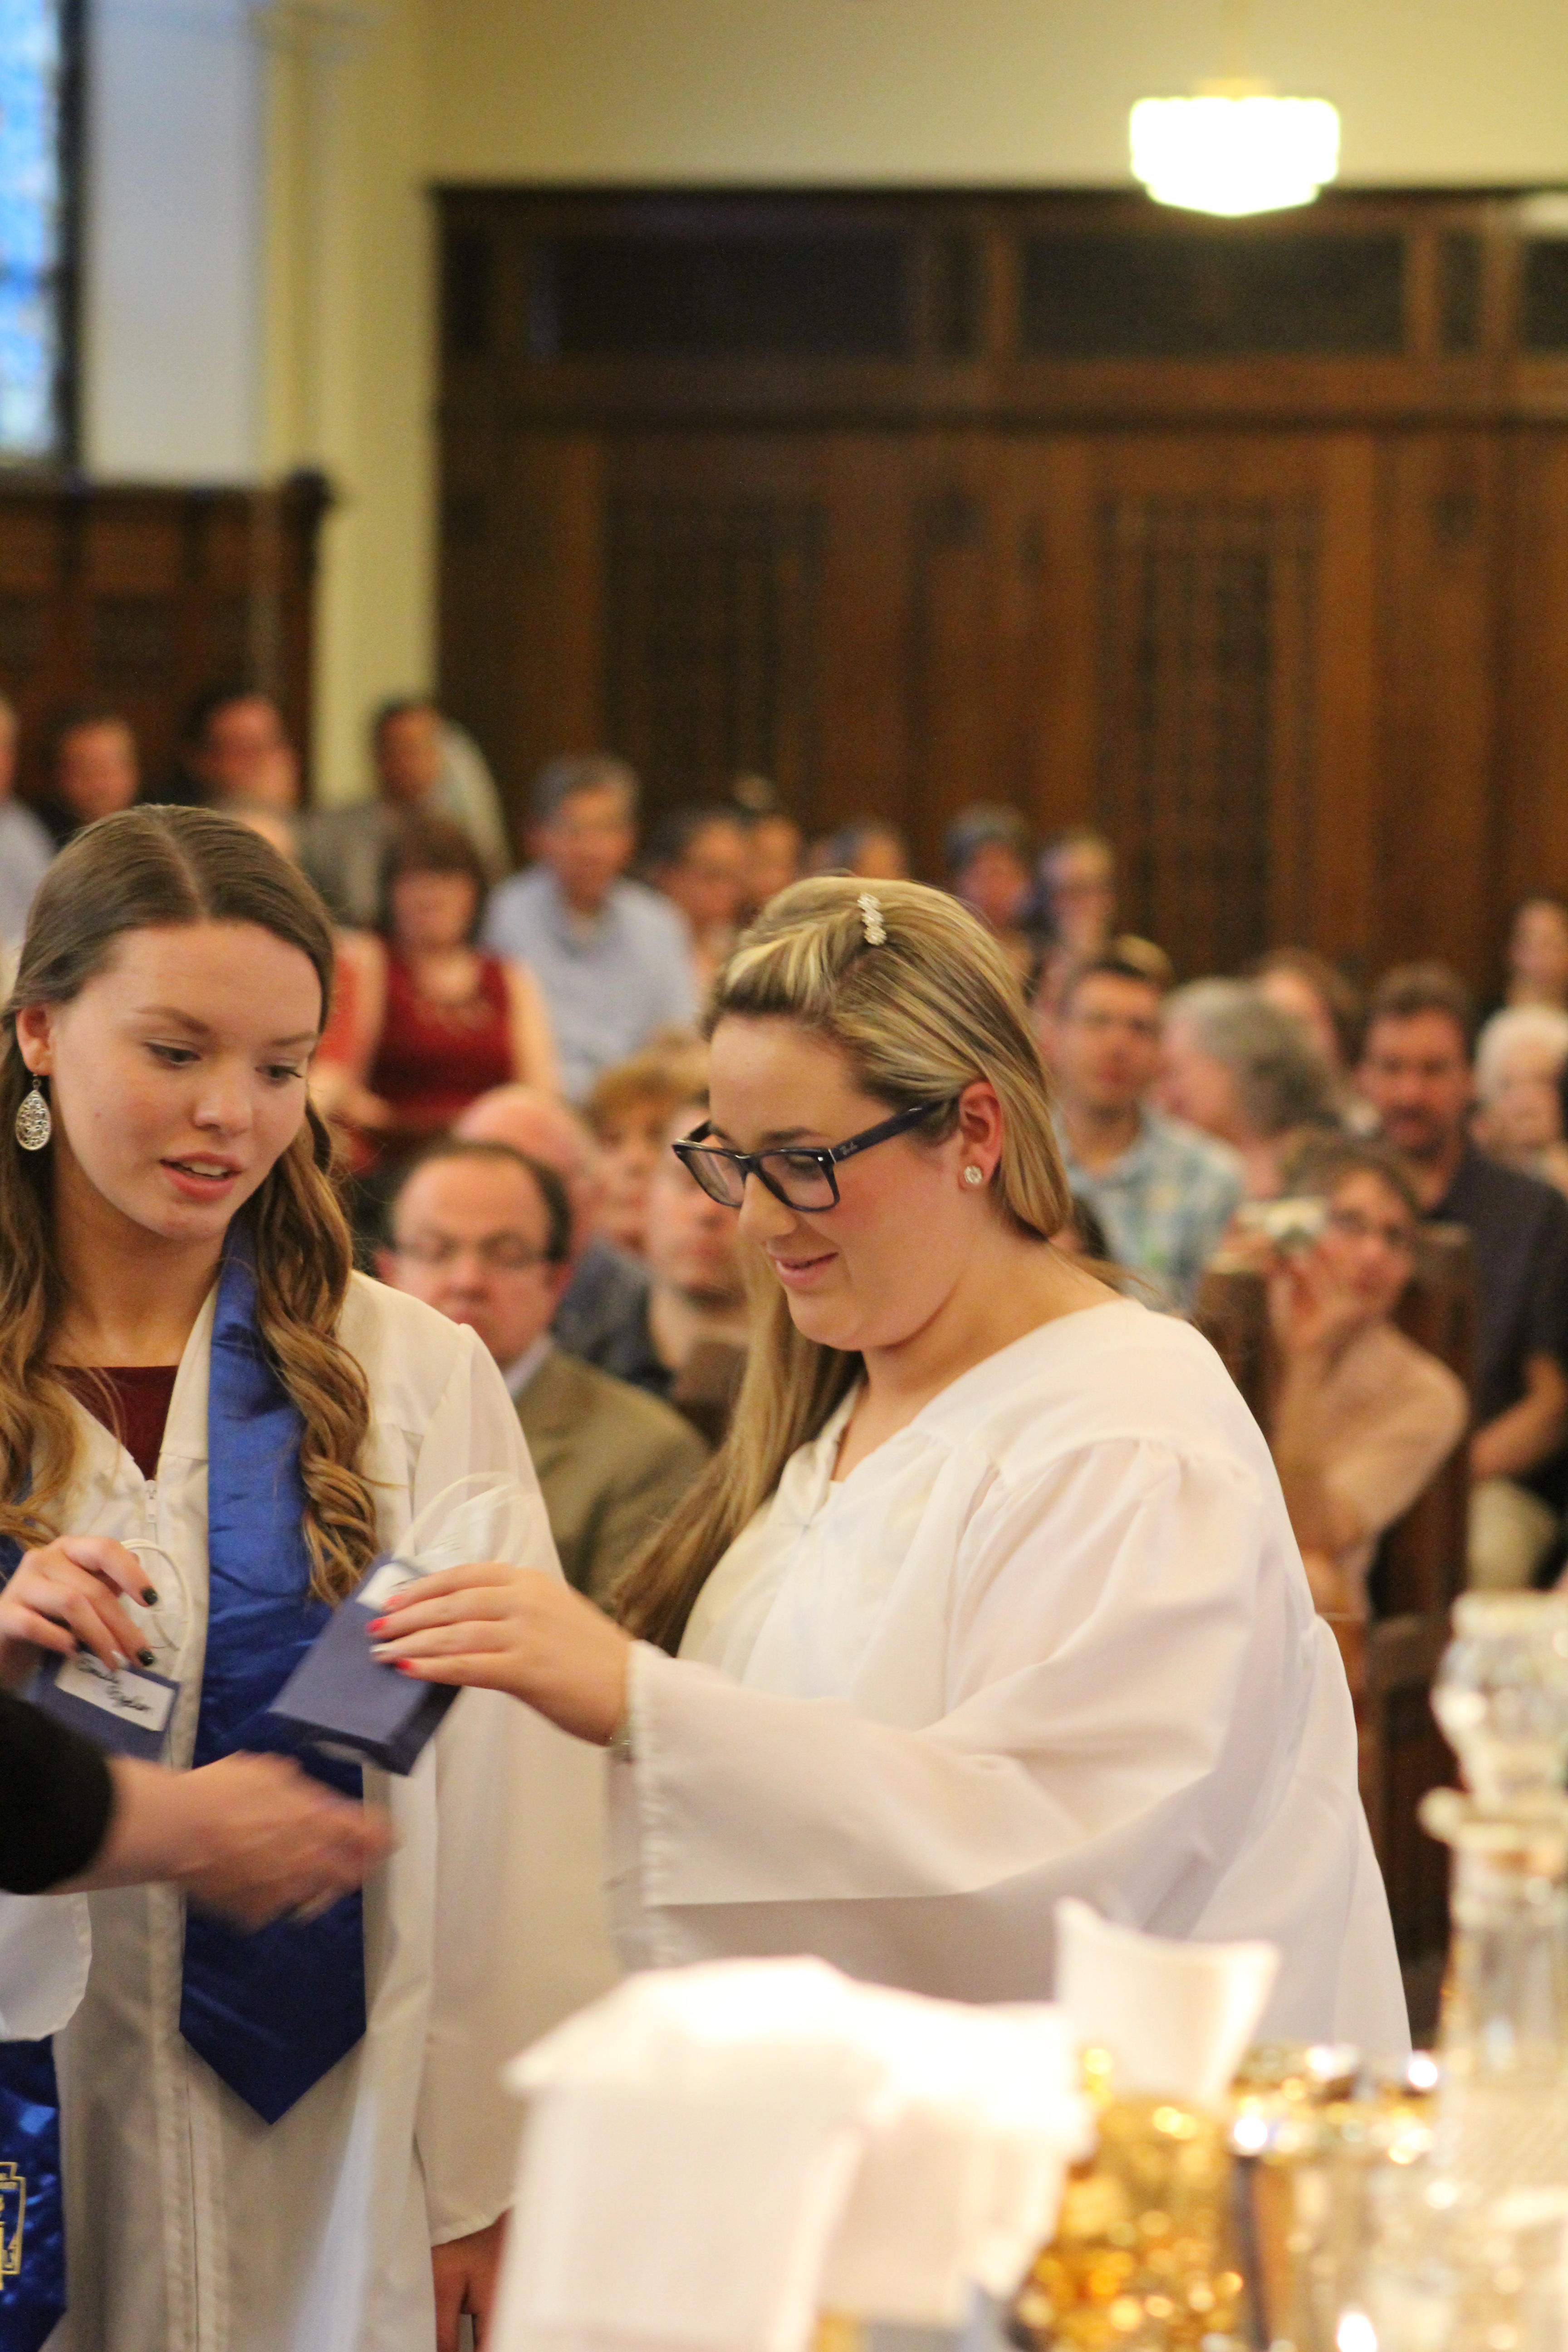 mount mercy academy holds its annual baccalaureate